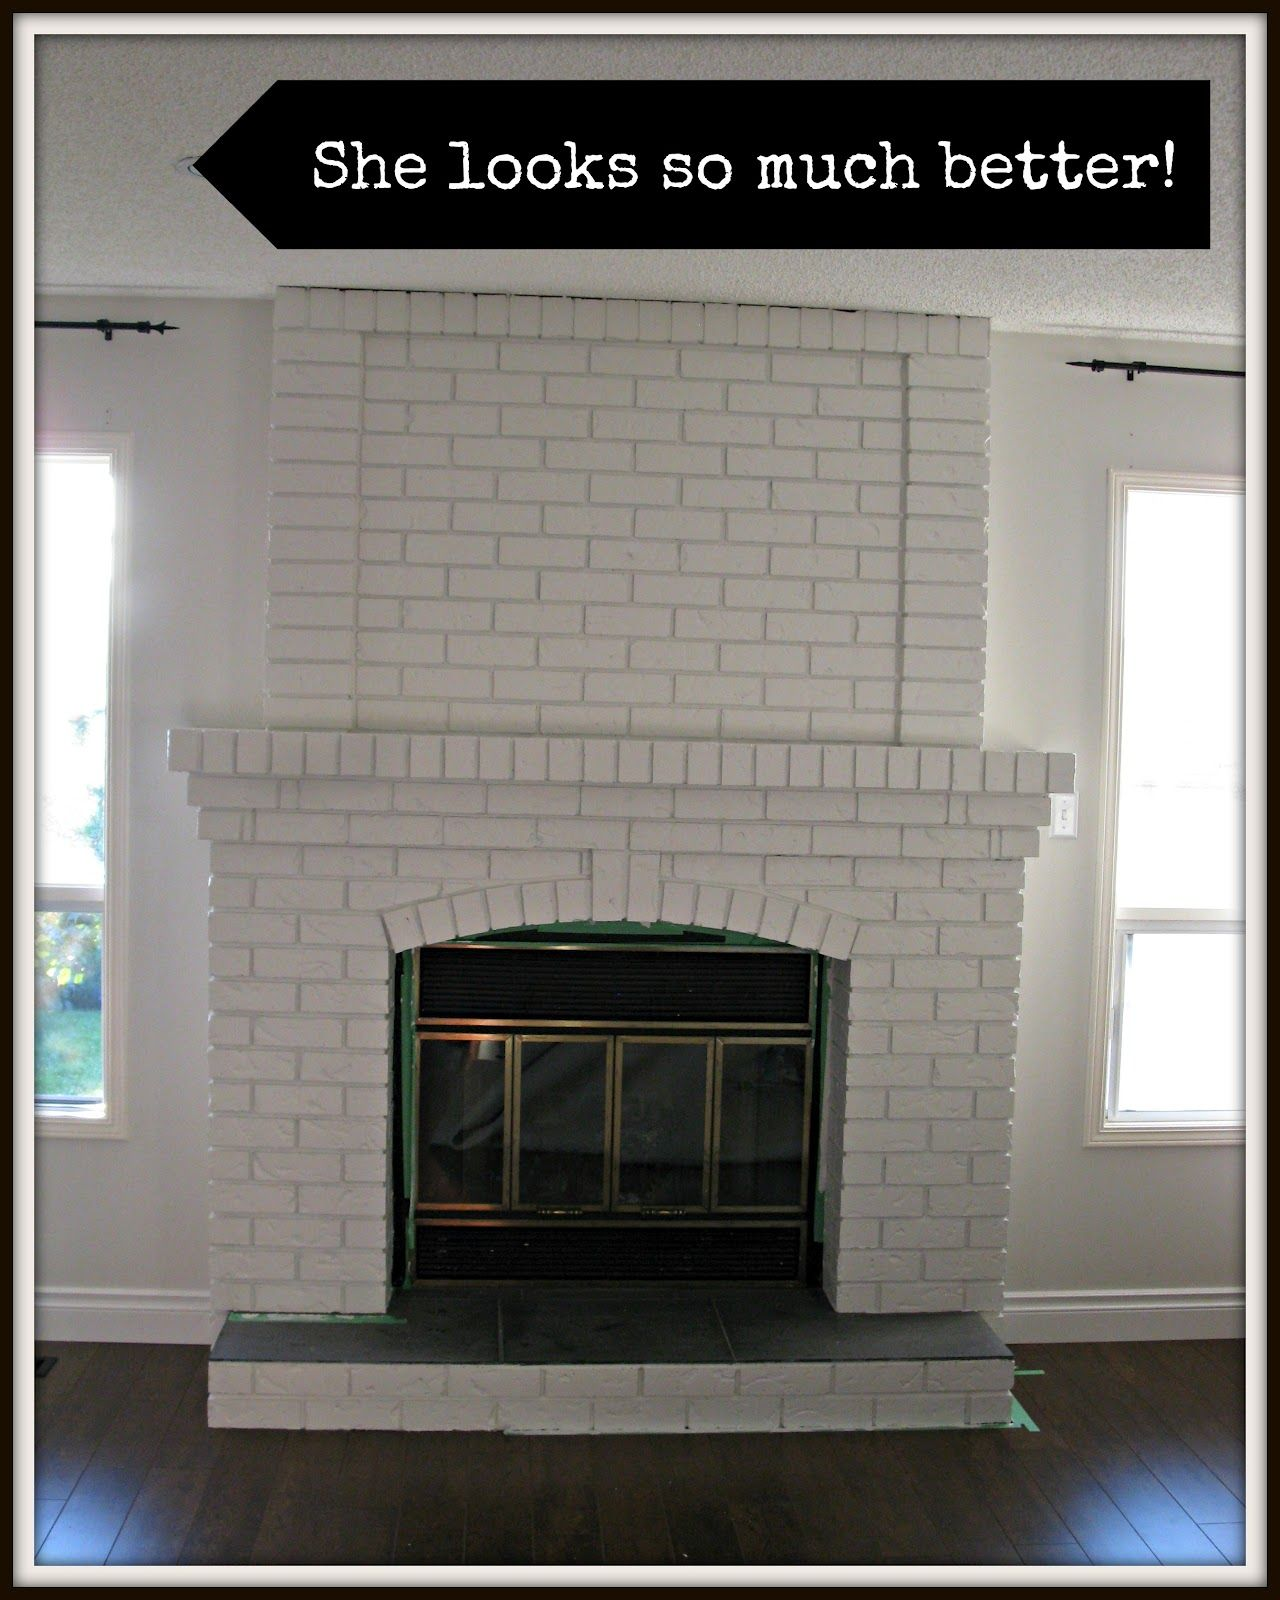 same fireplace without dark grout in white looks better to me